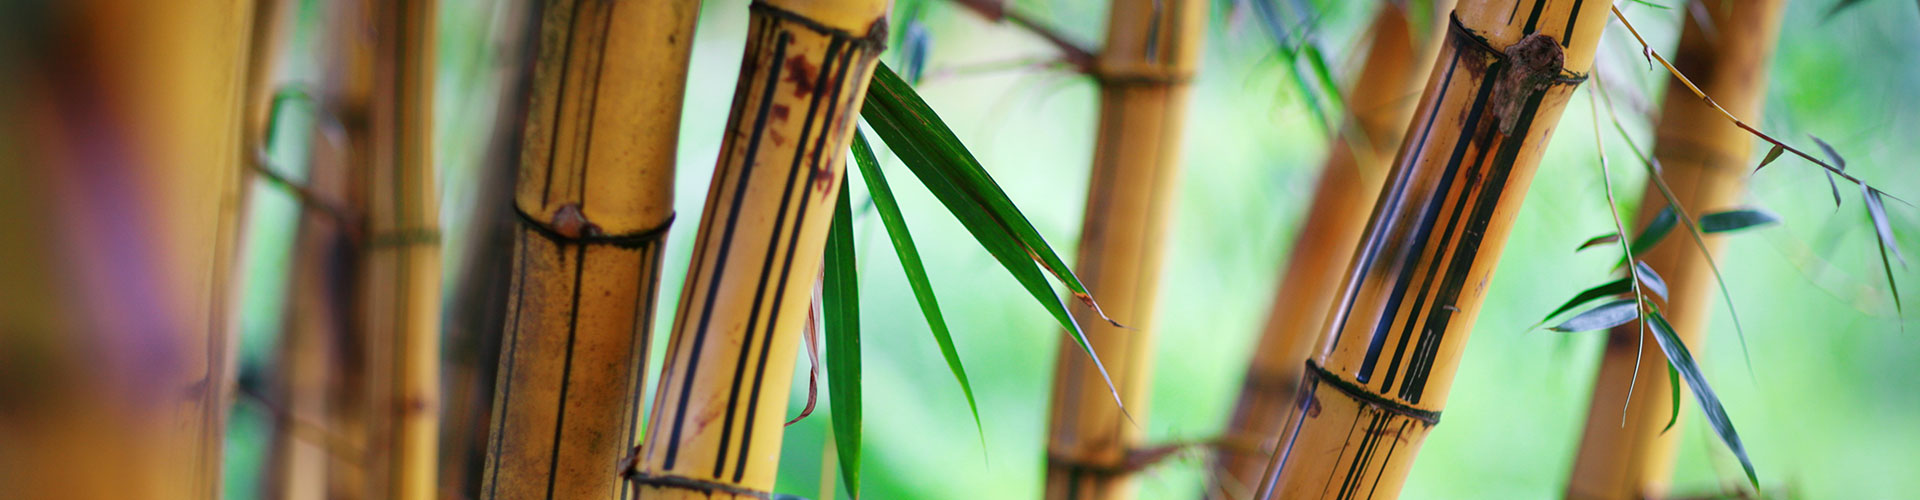 Bamboo Fiber: What is it? Why use it?